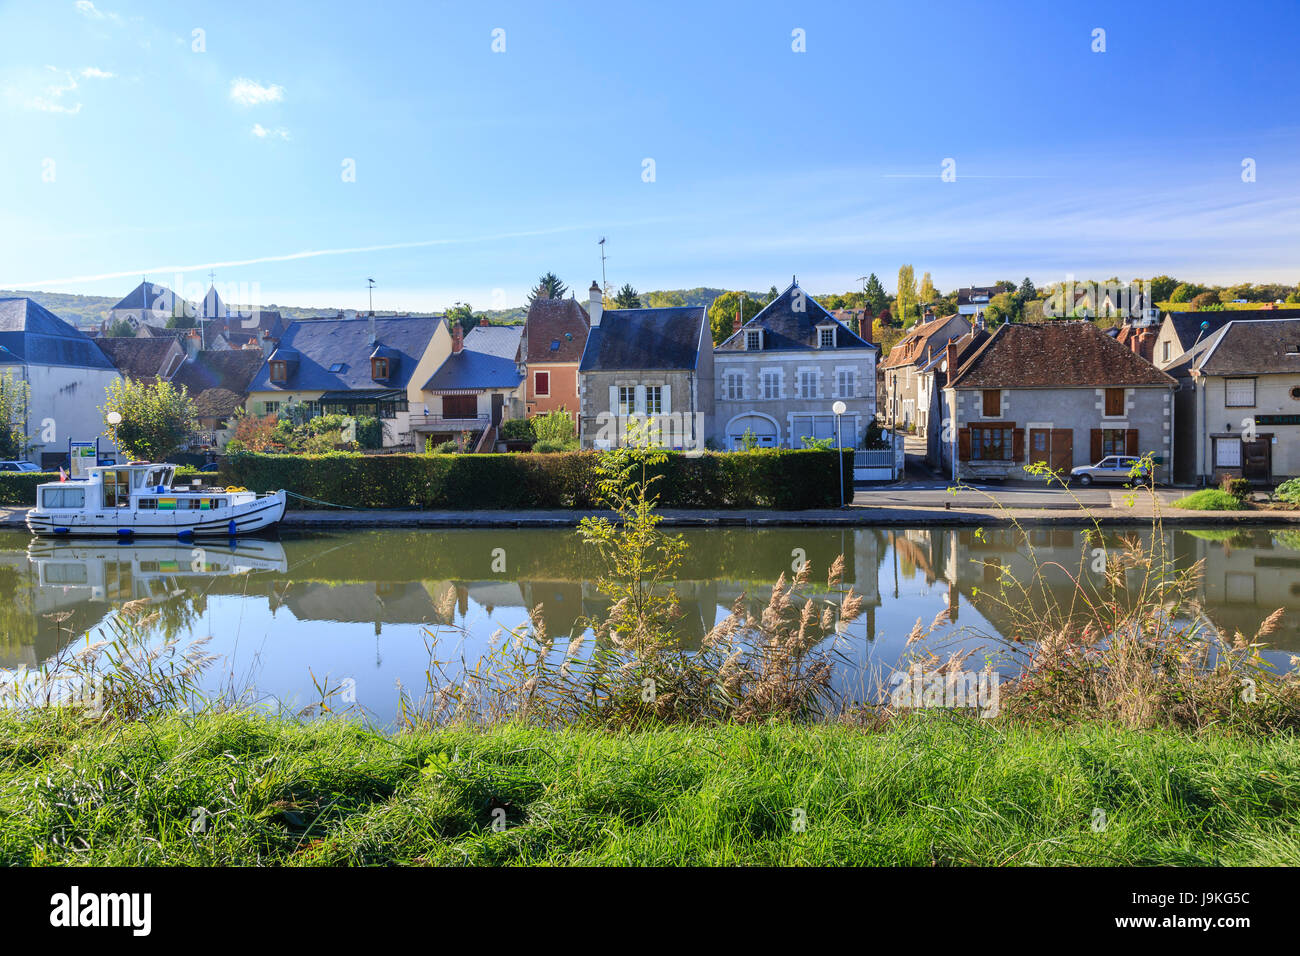 France, Cher, Menetreol-sous-Sancerre, the village and the small port on the canal lateral a la Loire - Stock Image